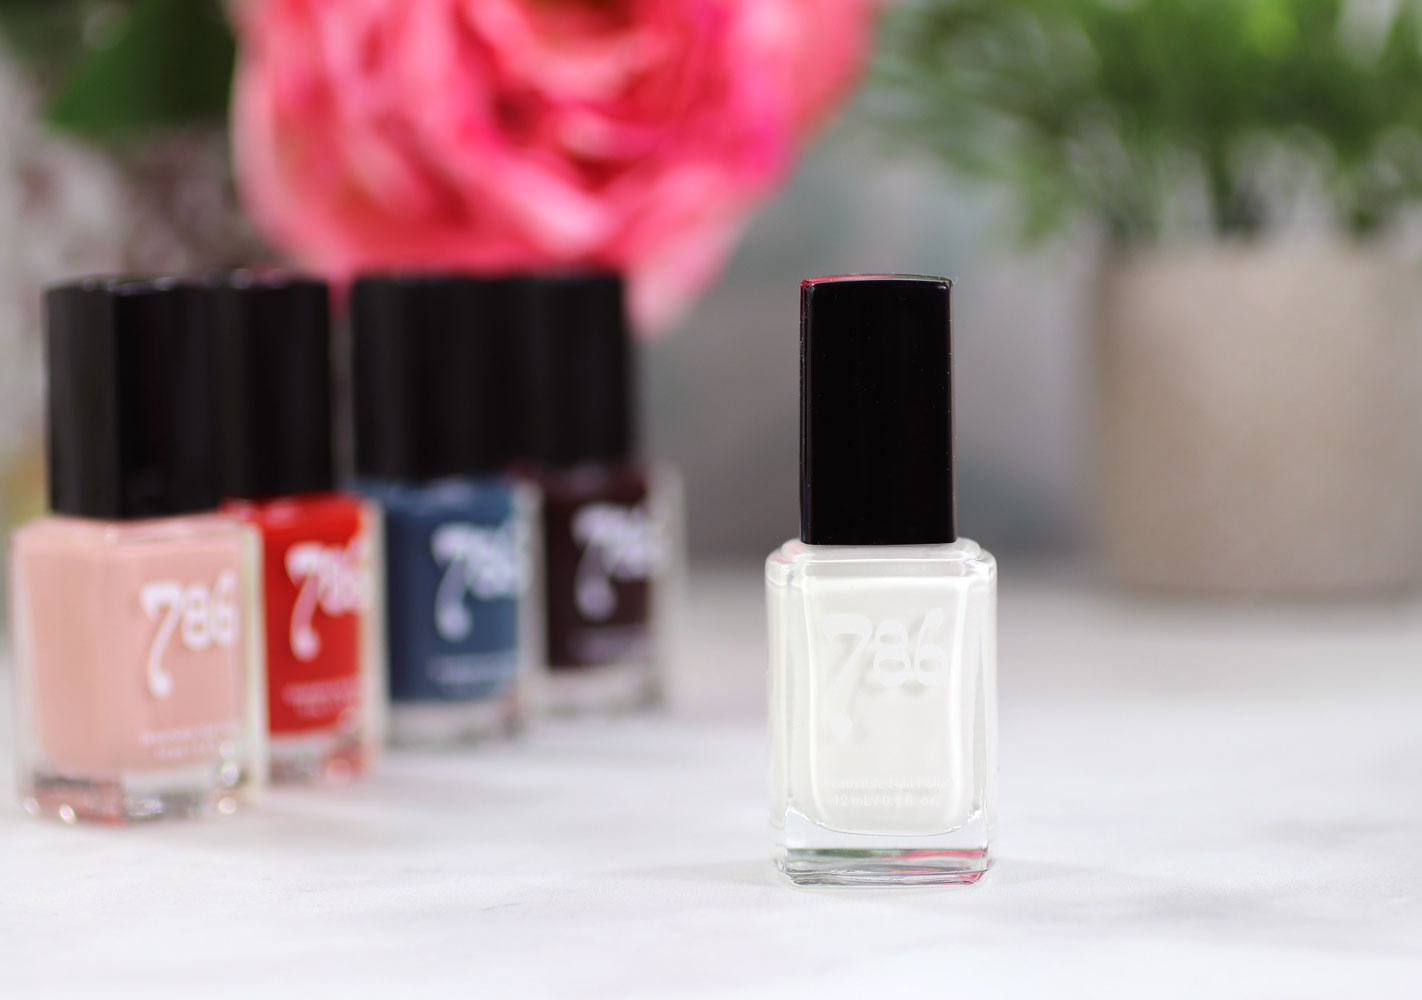 786 Cosmetics Breathable Cruelty Free and Vegan Nail Polish Review and Swatches - Abu Dhabi